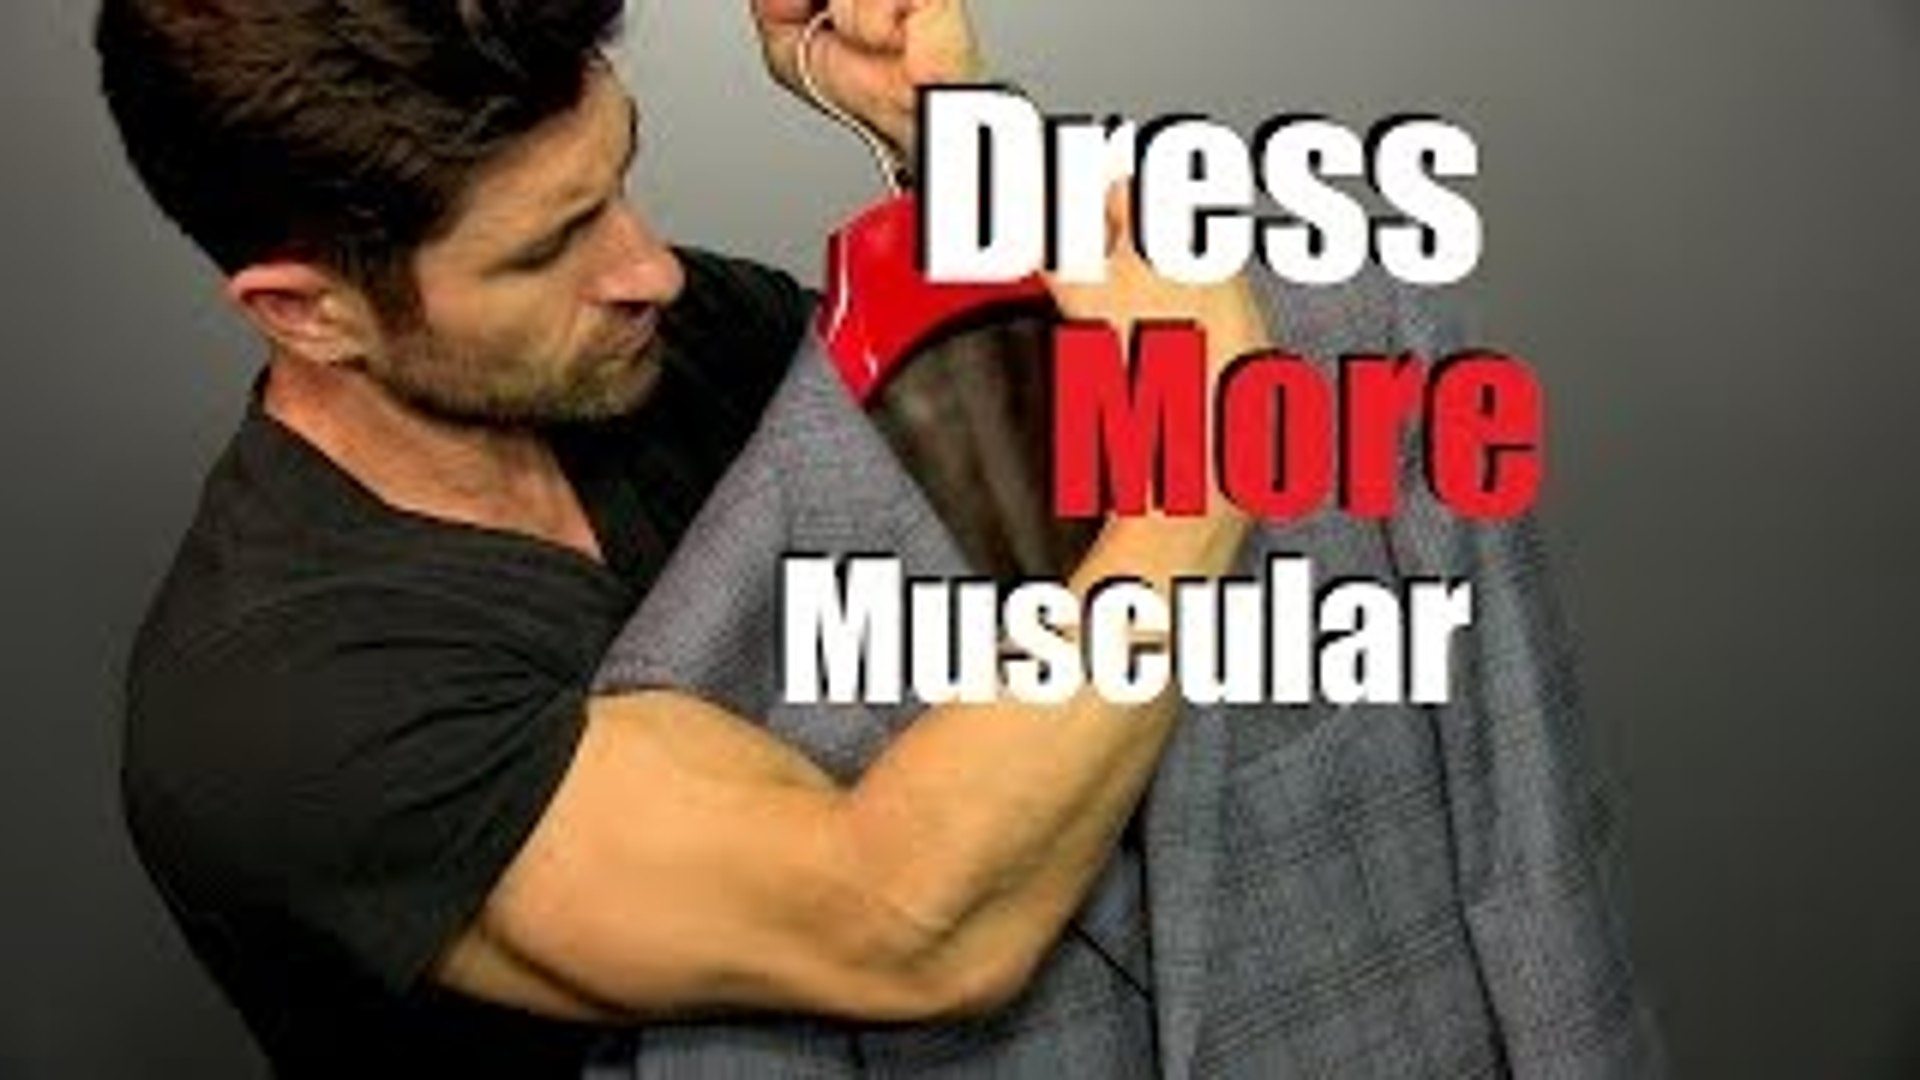 How To Look More Muscular In Your Clothes | 6 Style Tips To Dress More Muscular